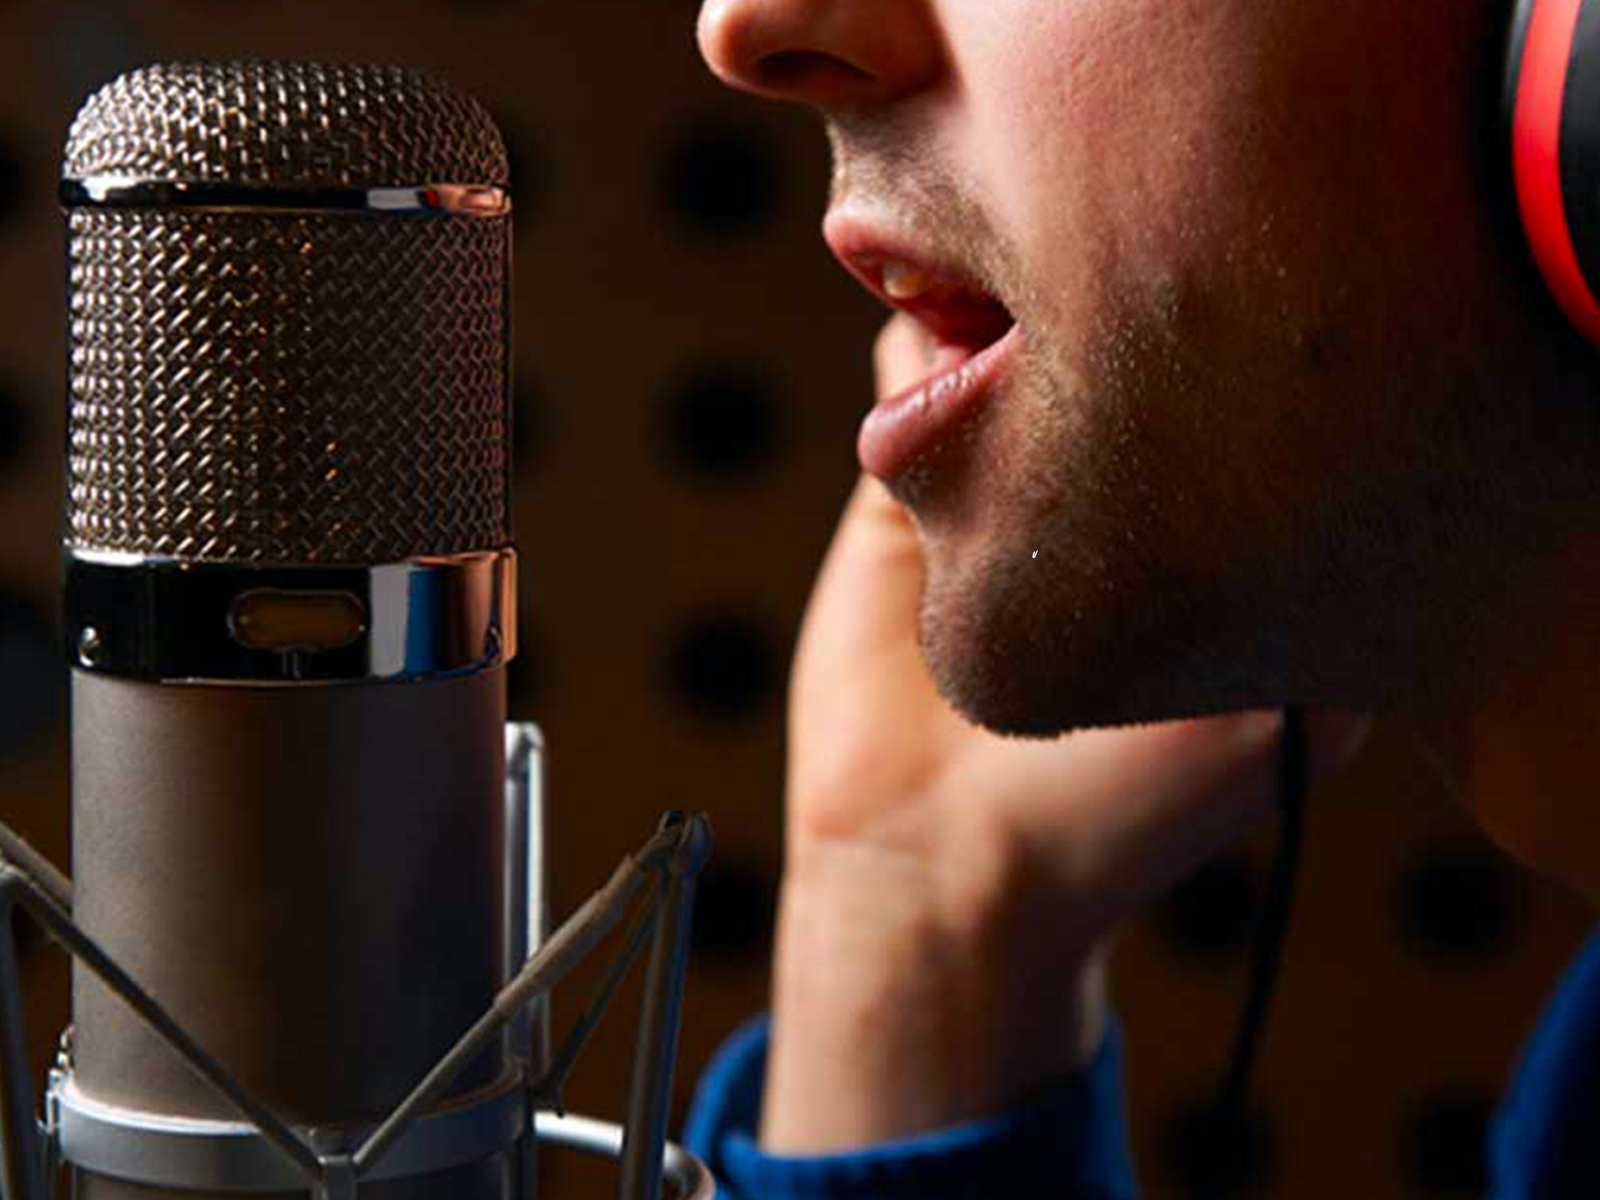 Voice Over and Jingles